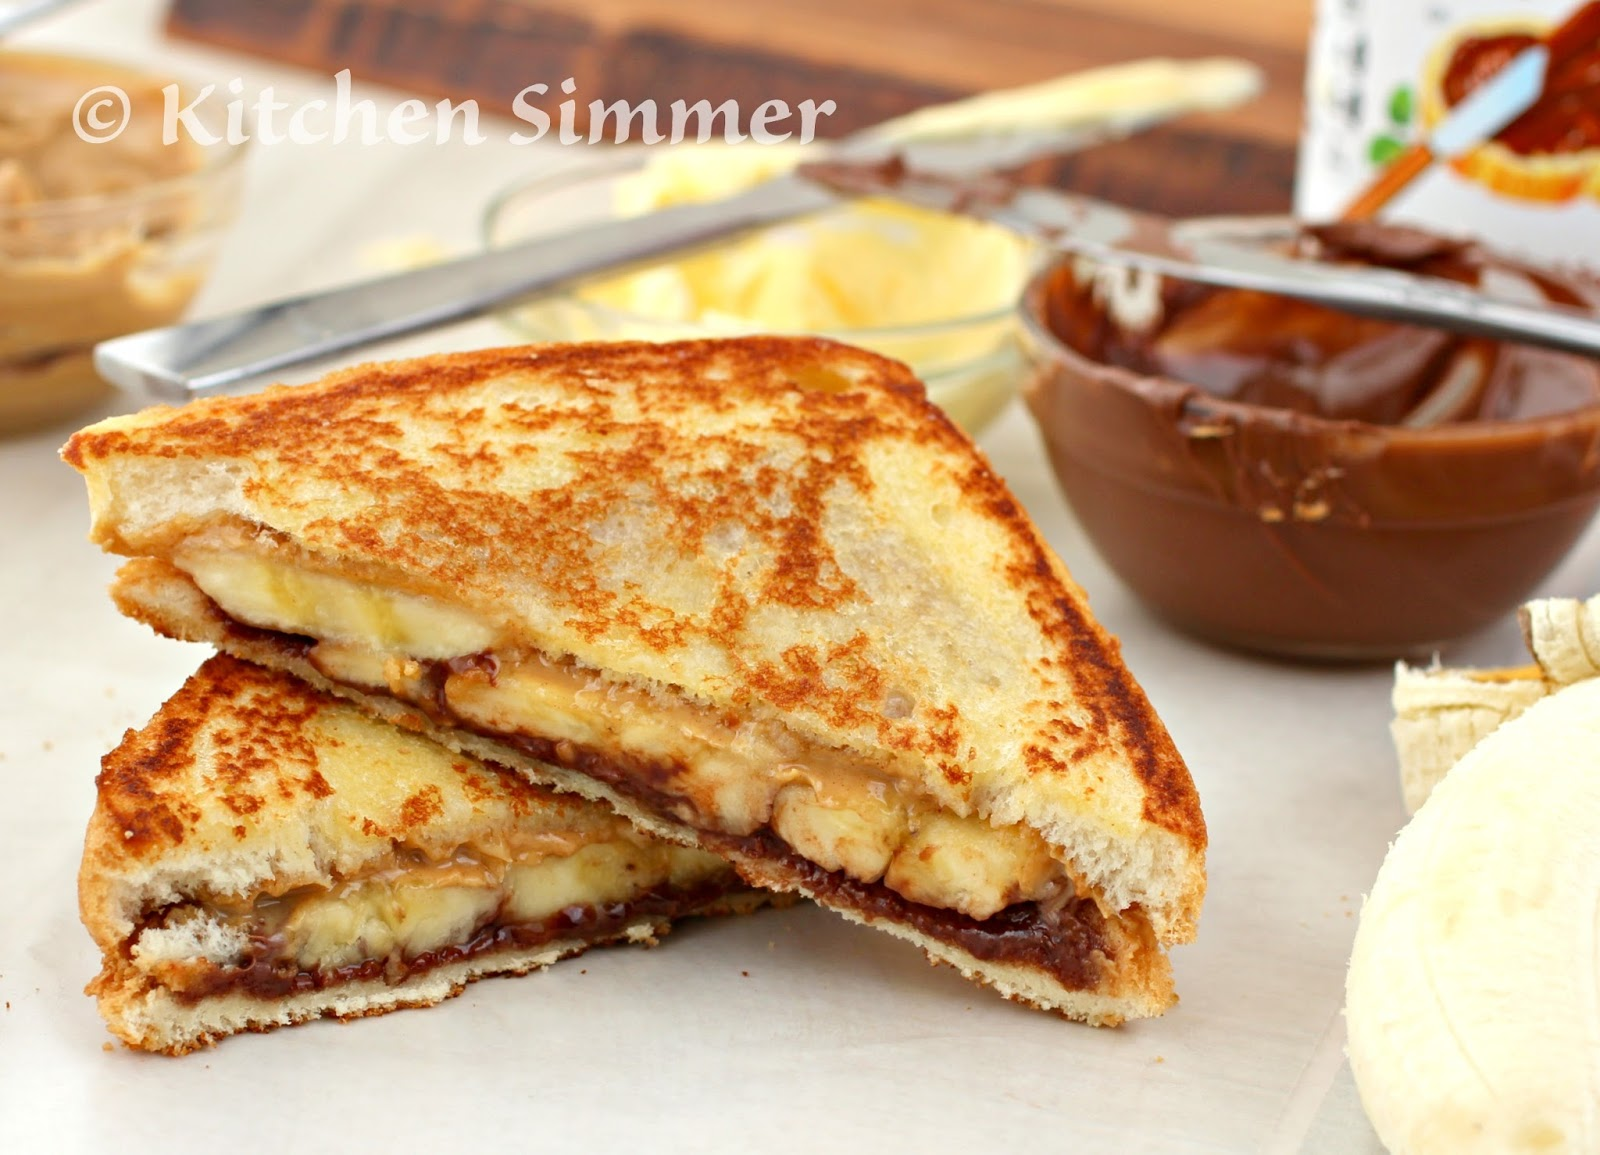 Kitchen Simmer Grilled Peanut Butter Banana And Nutella Sandwich Go Box Of 12